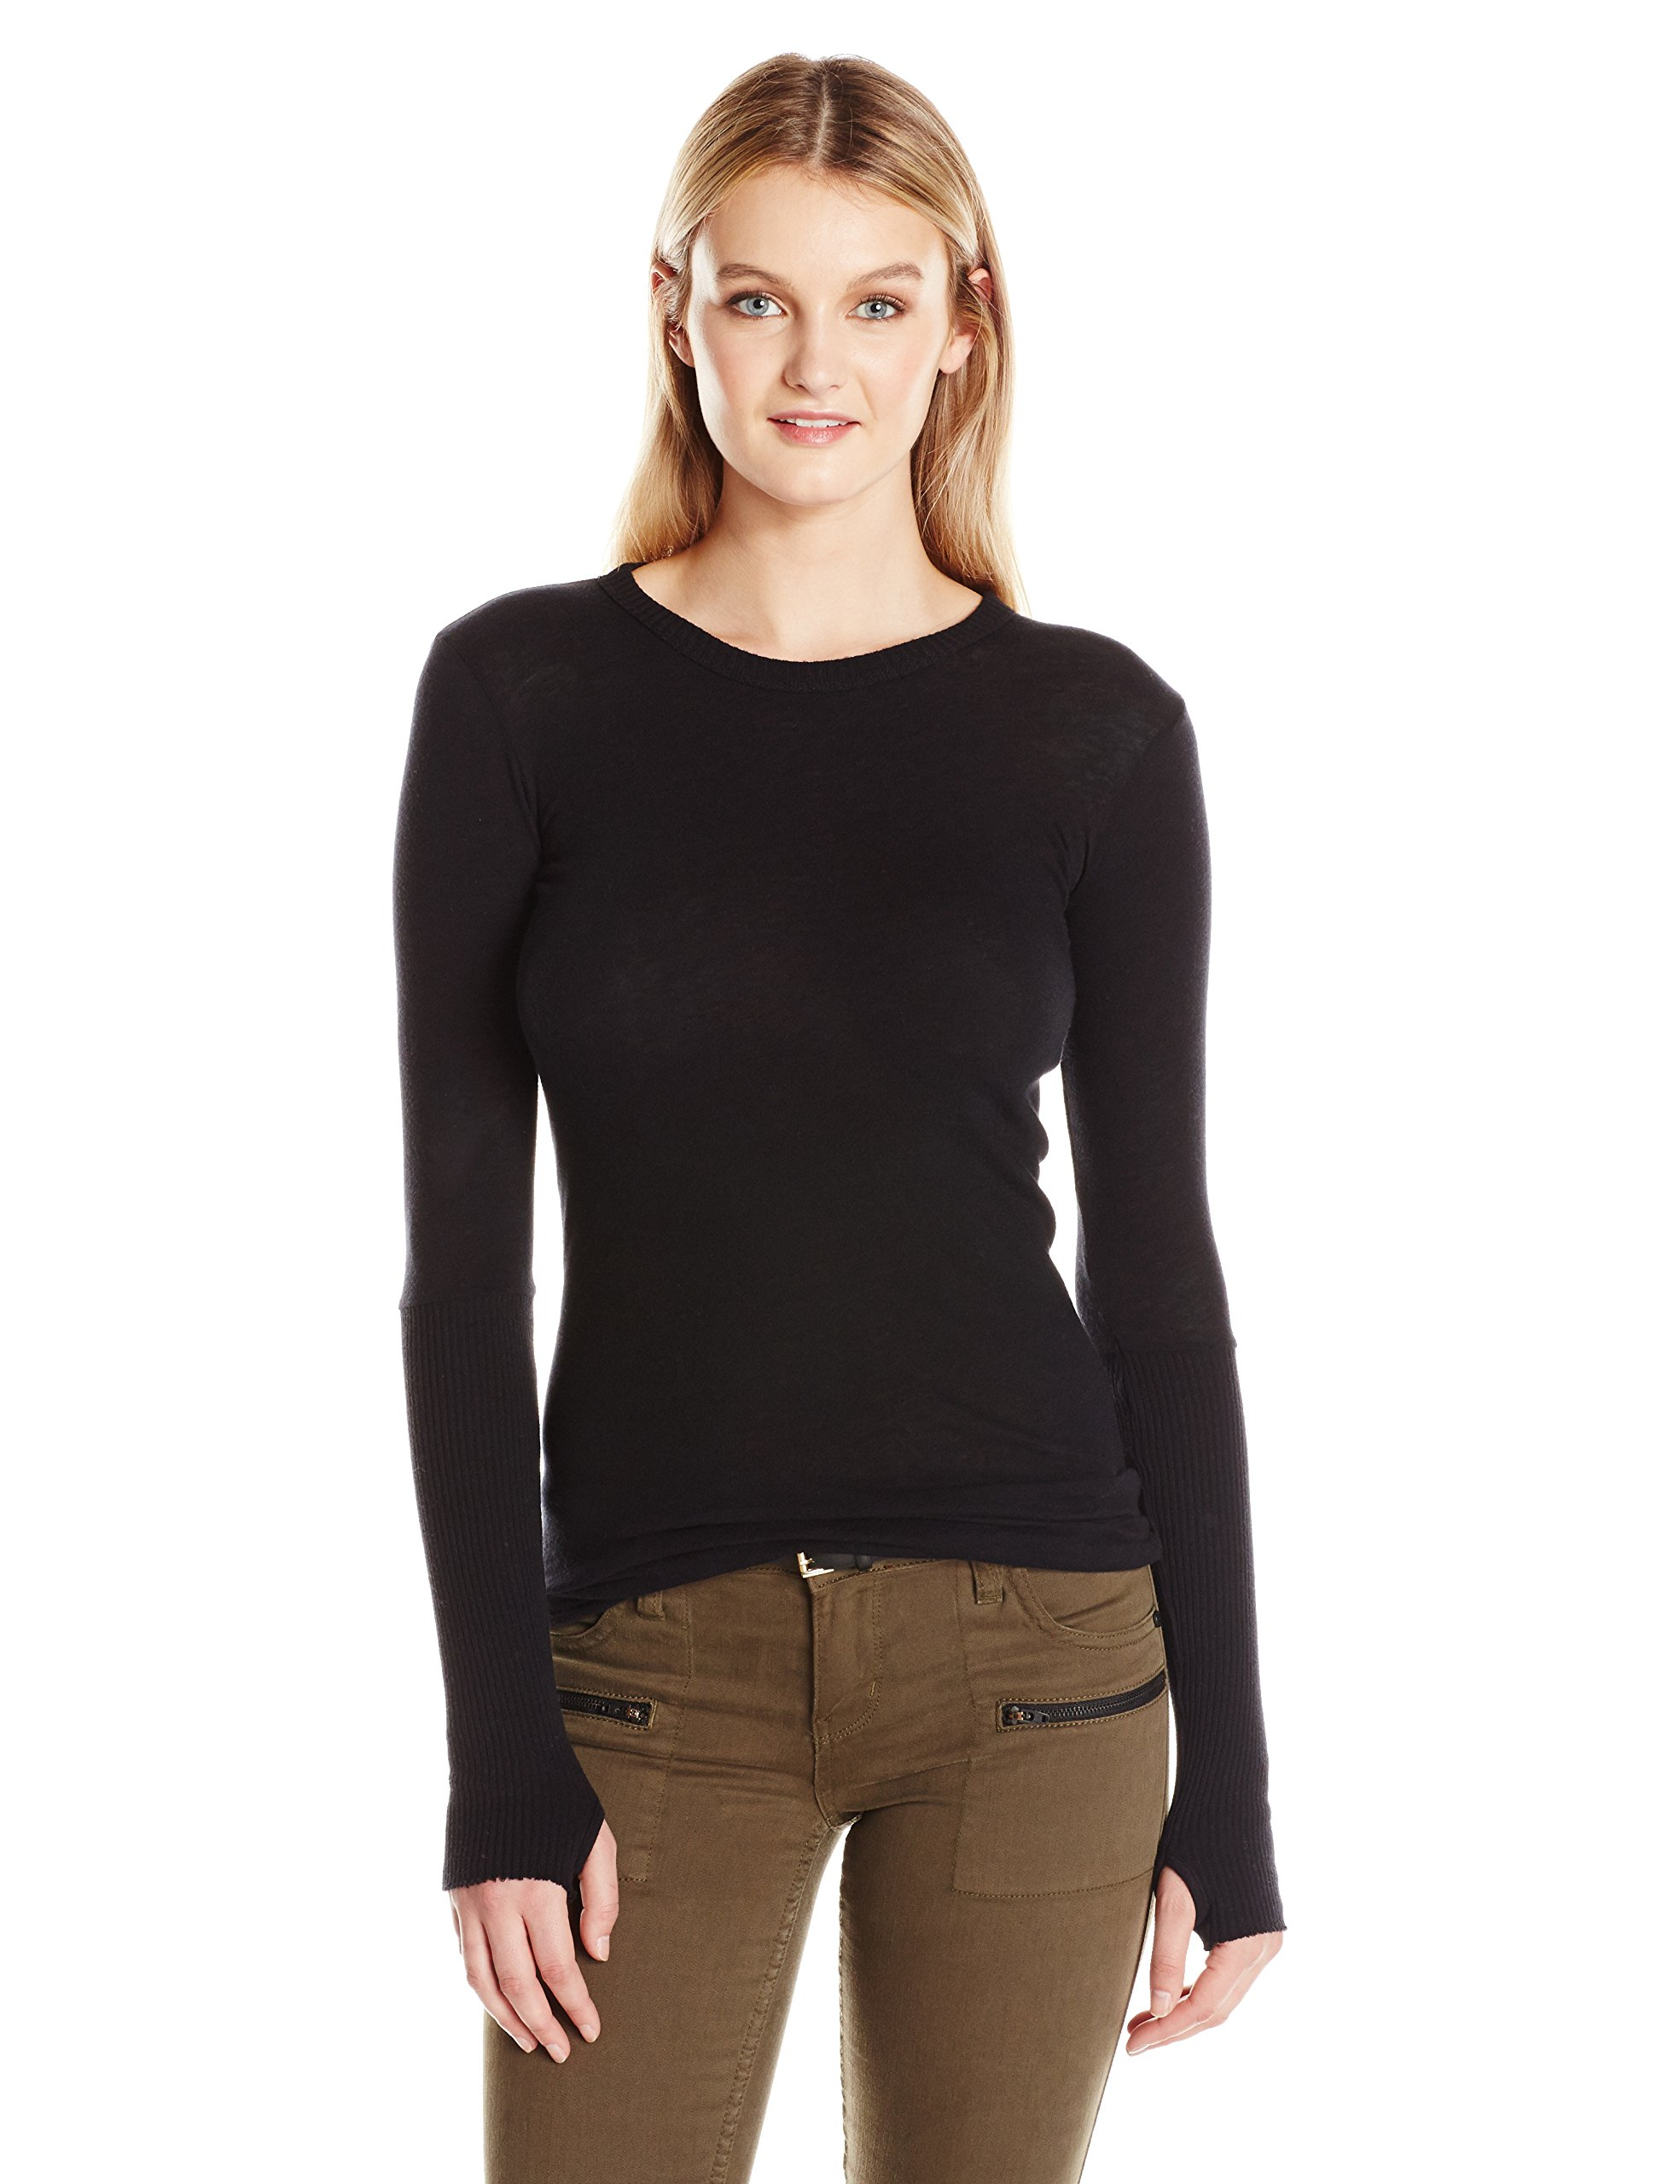 Enza Costa Women's Cashmere Long Sleeve Cuffed Crew with Thumbhole, Black, S